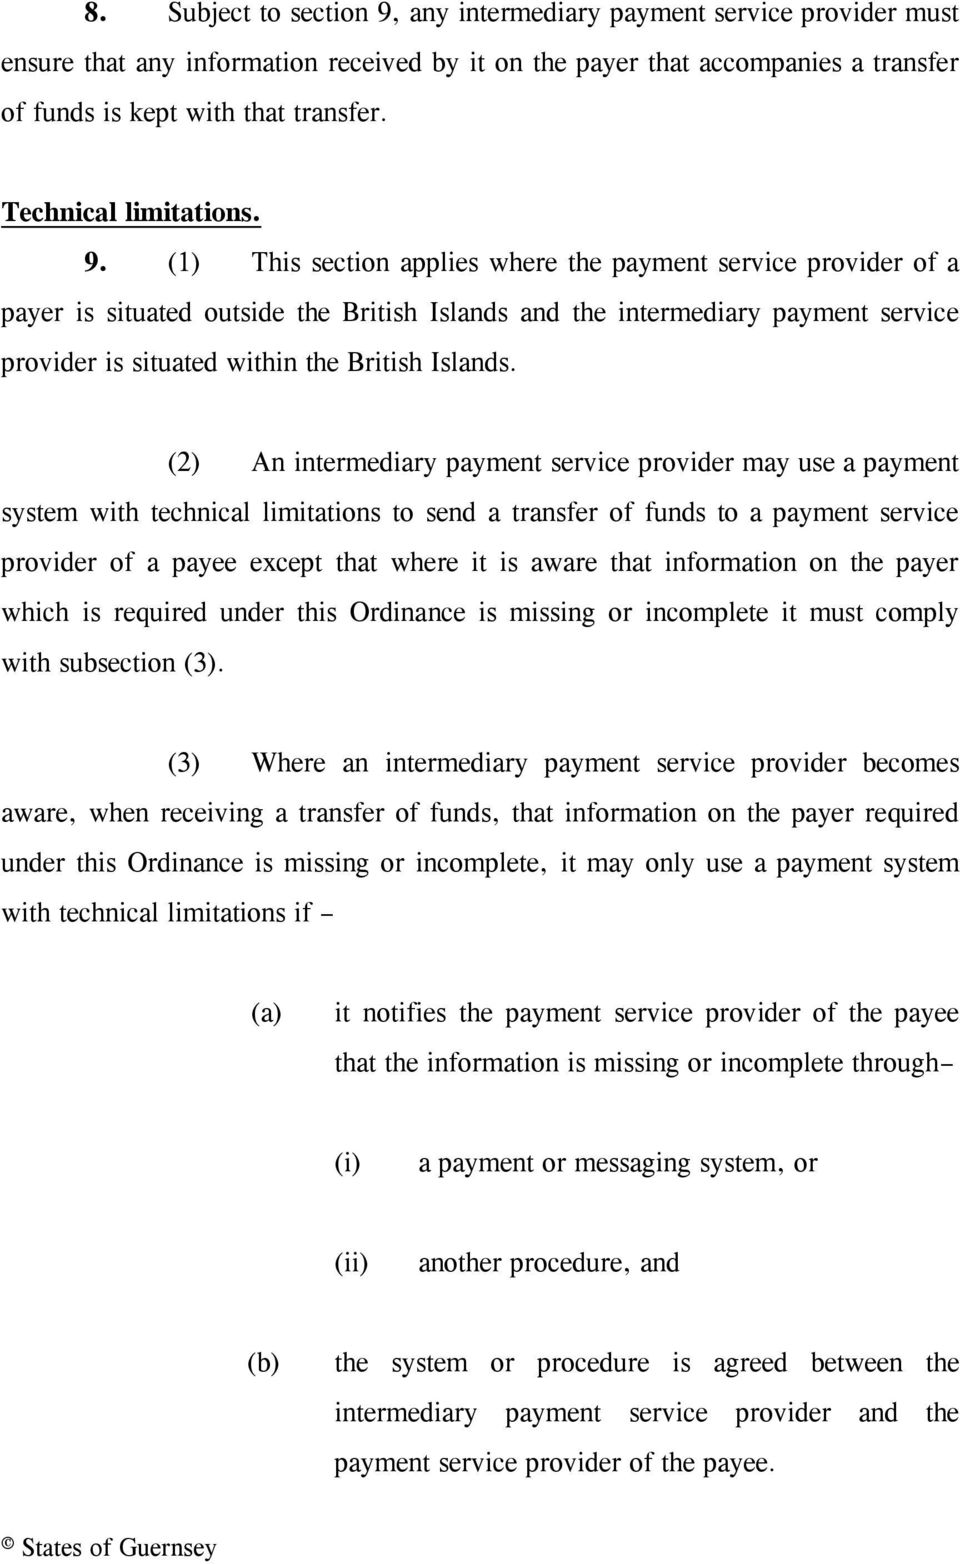 (1) This section applies where the payment service provider of a payer is situated outside the British Islands and the intermediary payment service provider is situated within the British Islands.